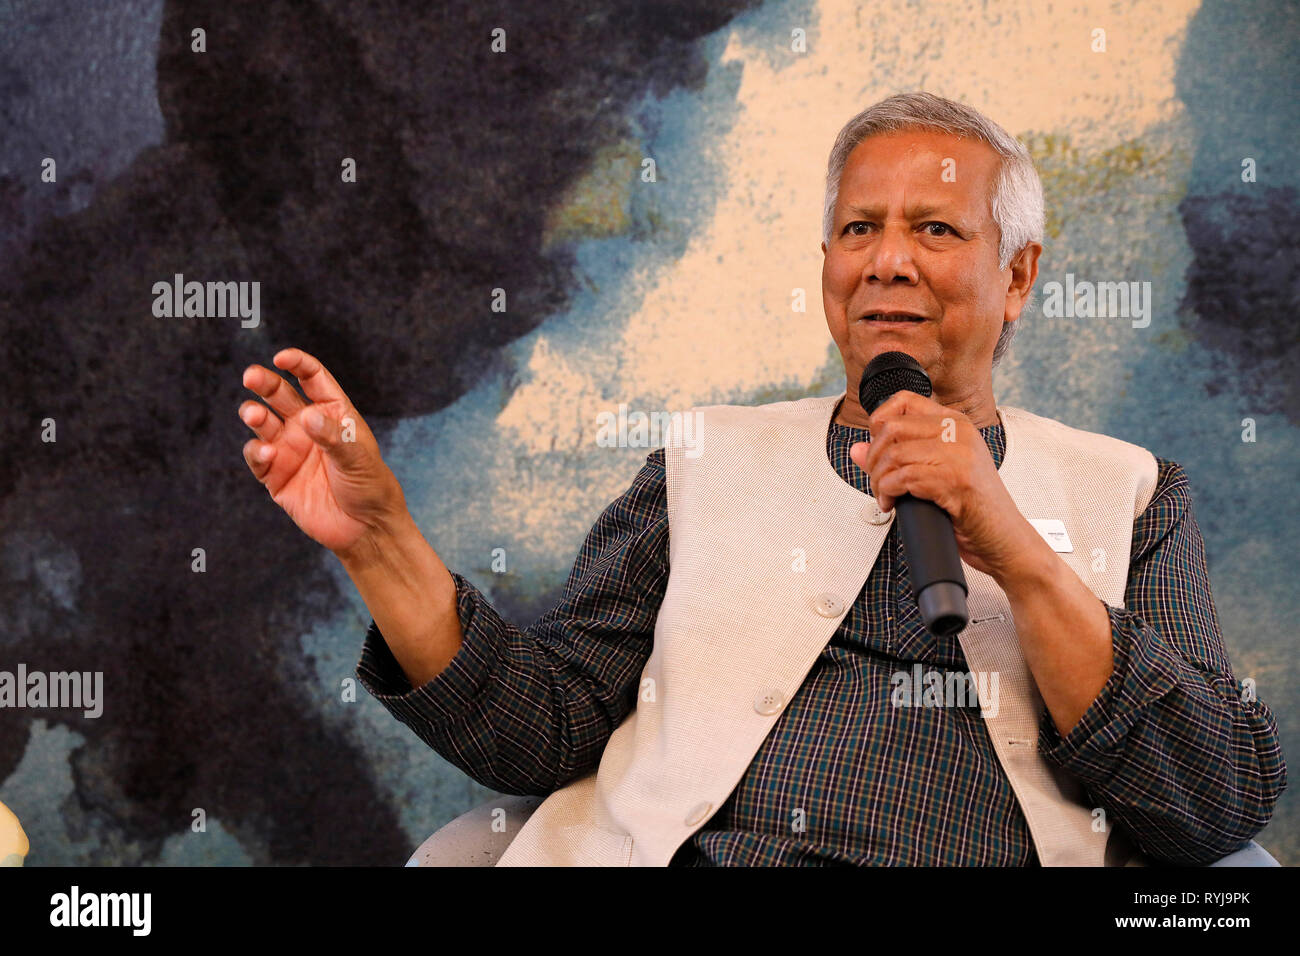 Nobel prize winner Muhammad Yunus, founder of he Grameen Bank. - Stock Image